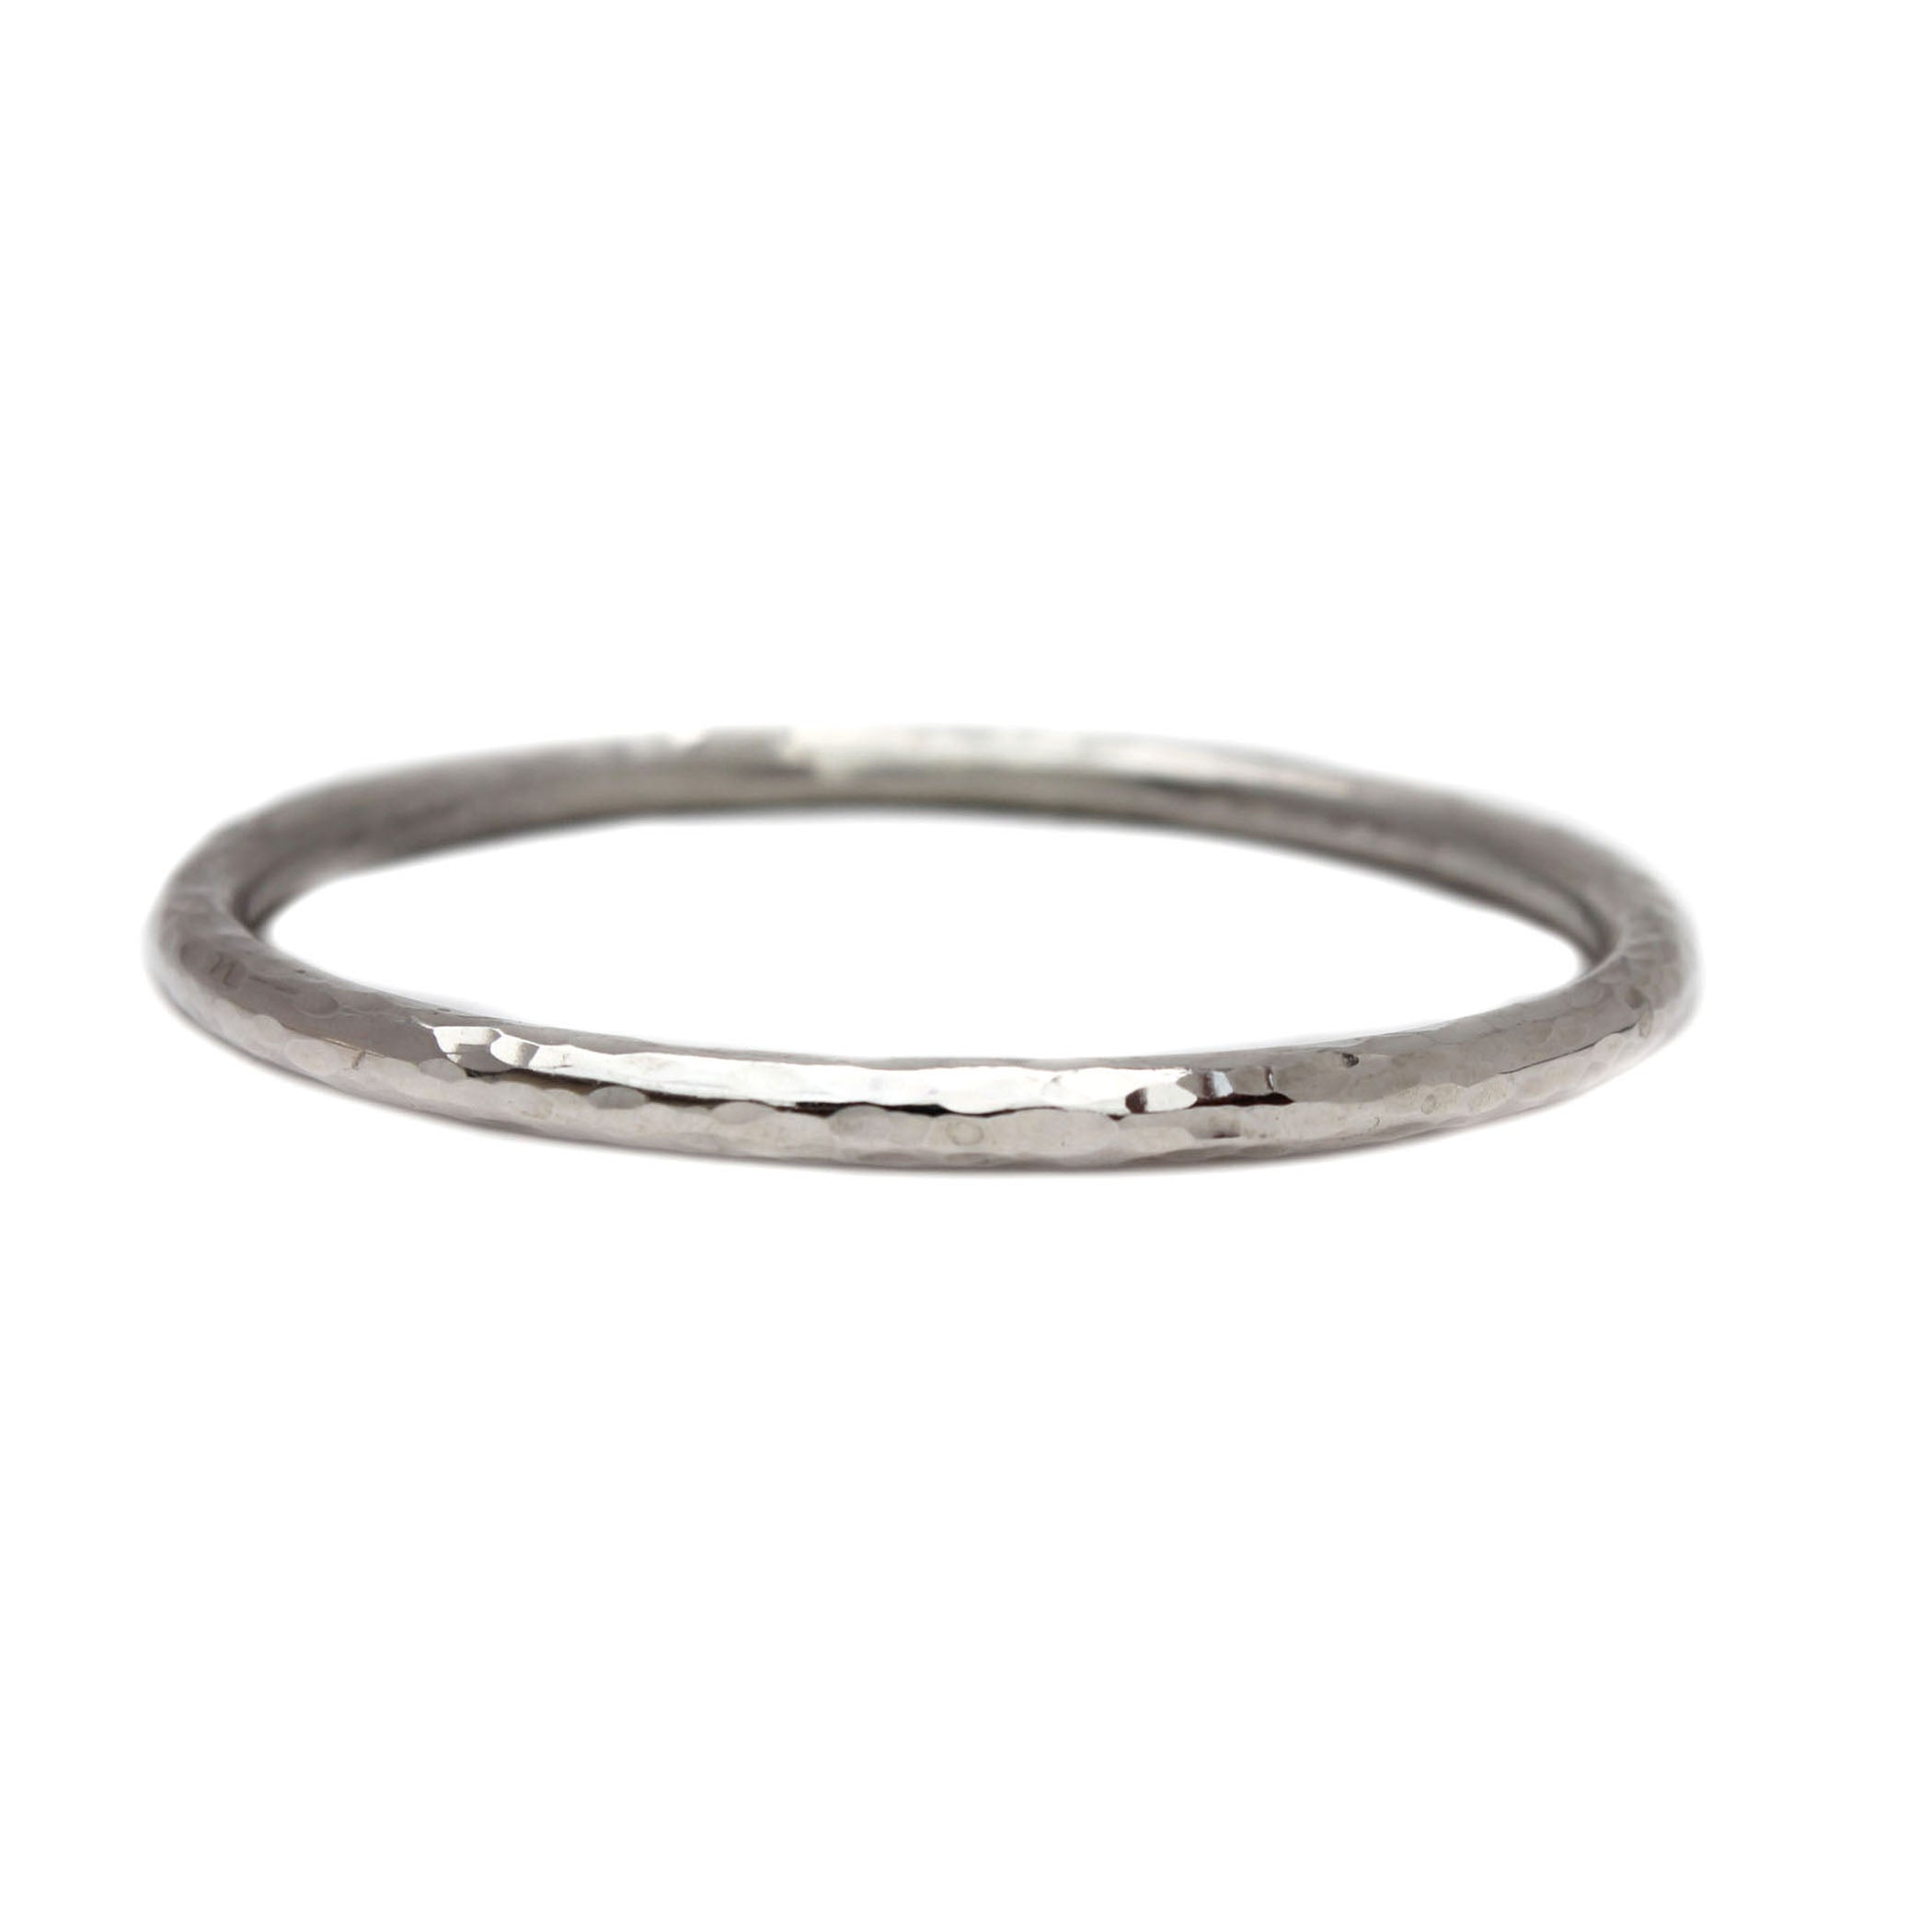 edge a made and stamped bracelet custom crafted hand silver cuff thick by hammered buy s message with sorayajanejewelry